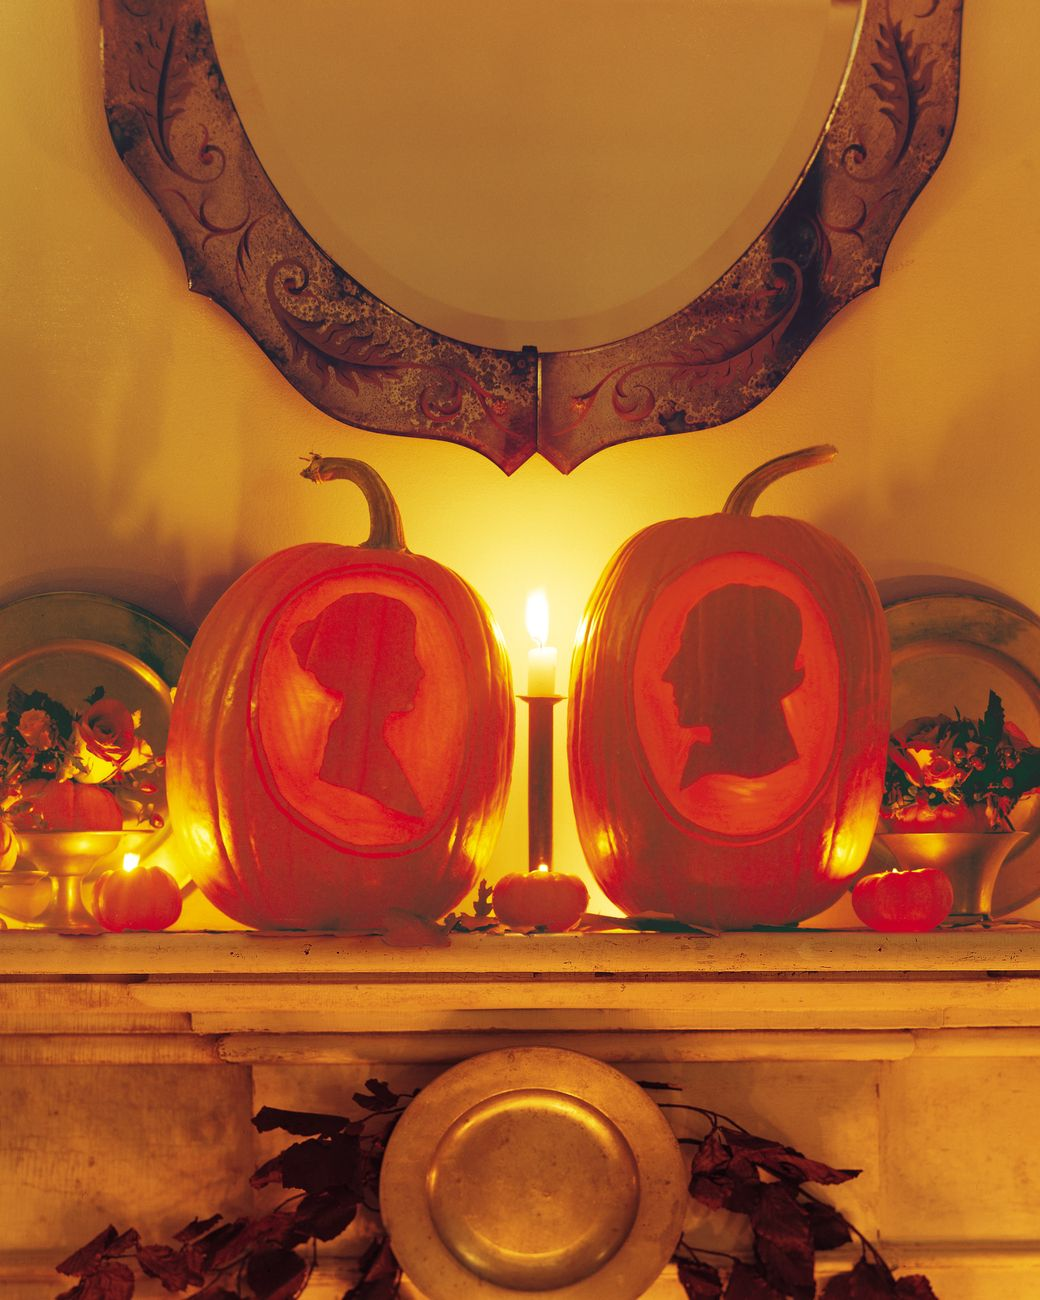 Cool Pumpkin Carving Ideas That Double as Decor Pumpkin carvings - Diy Indoor Halloween Decorations